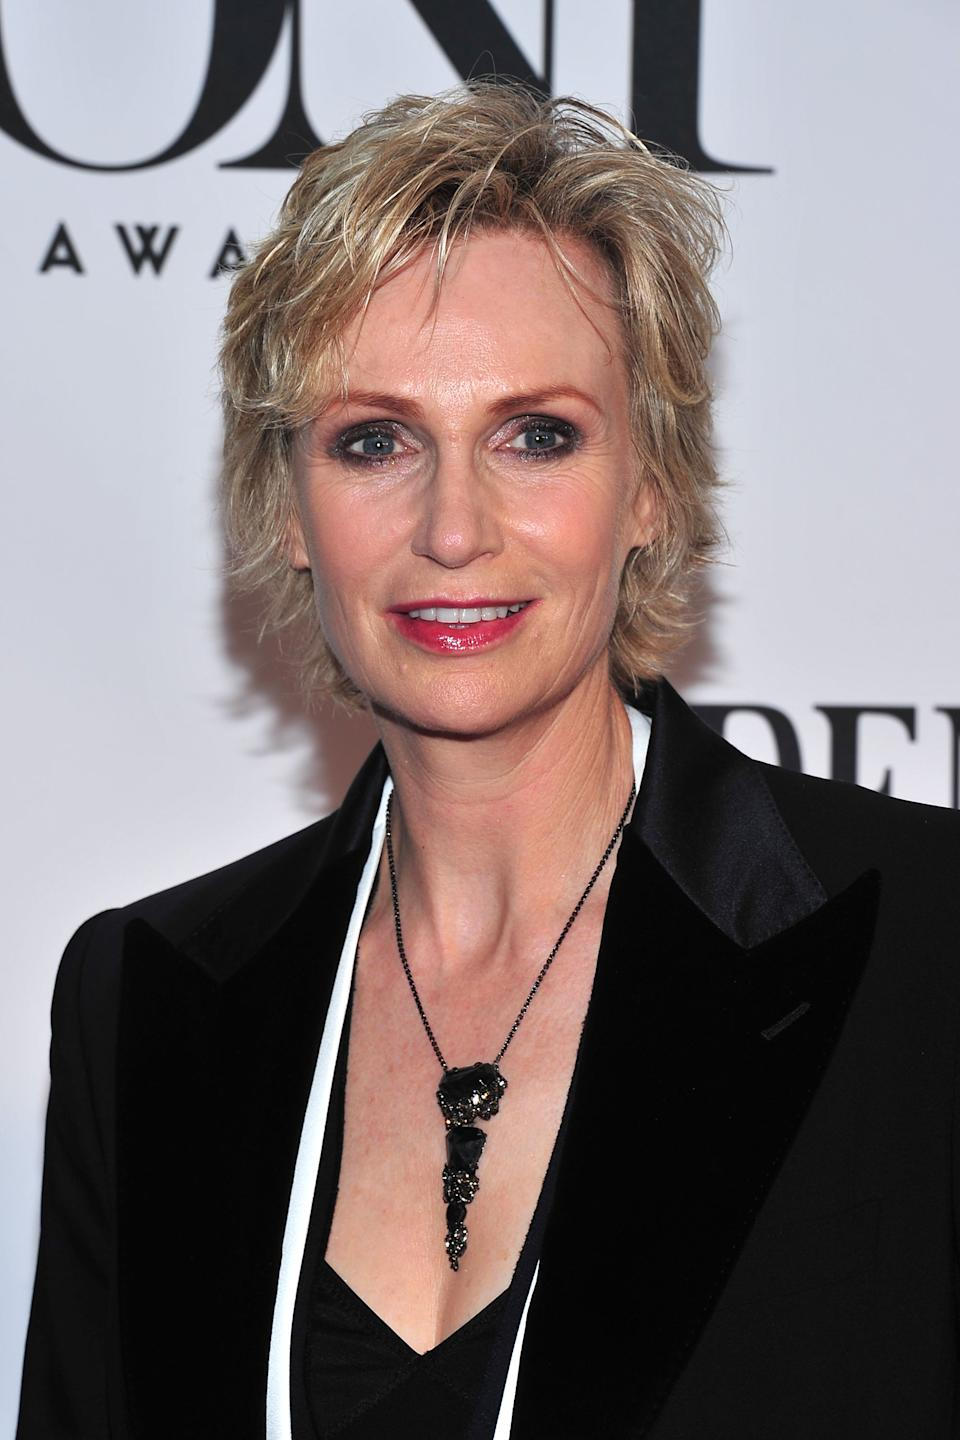 Jane Lynch arrives on the red carpet at the 67th Annual Tony Awards, on Sunday, June 9, 2013 in New York. (Photo by Charles Sykes/Invision/AP)